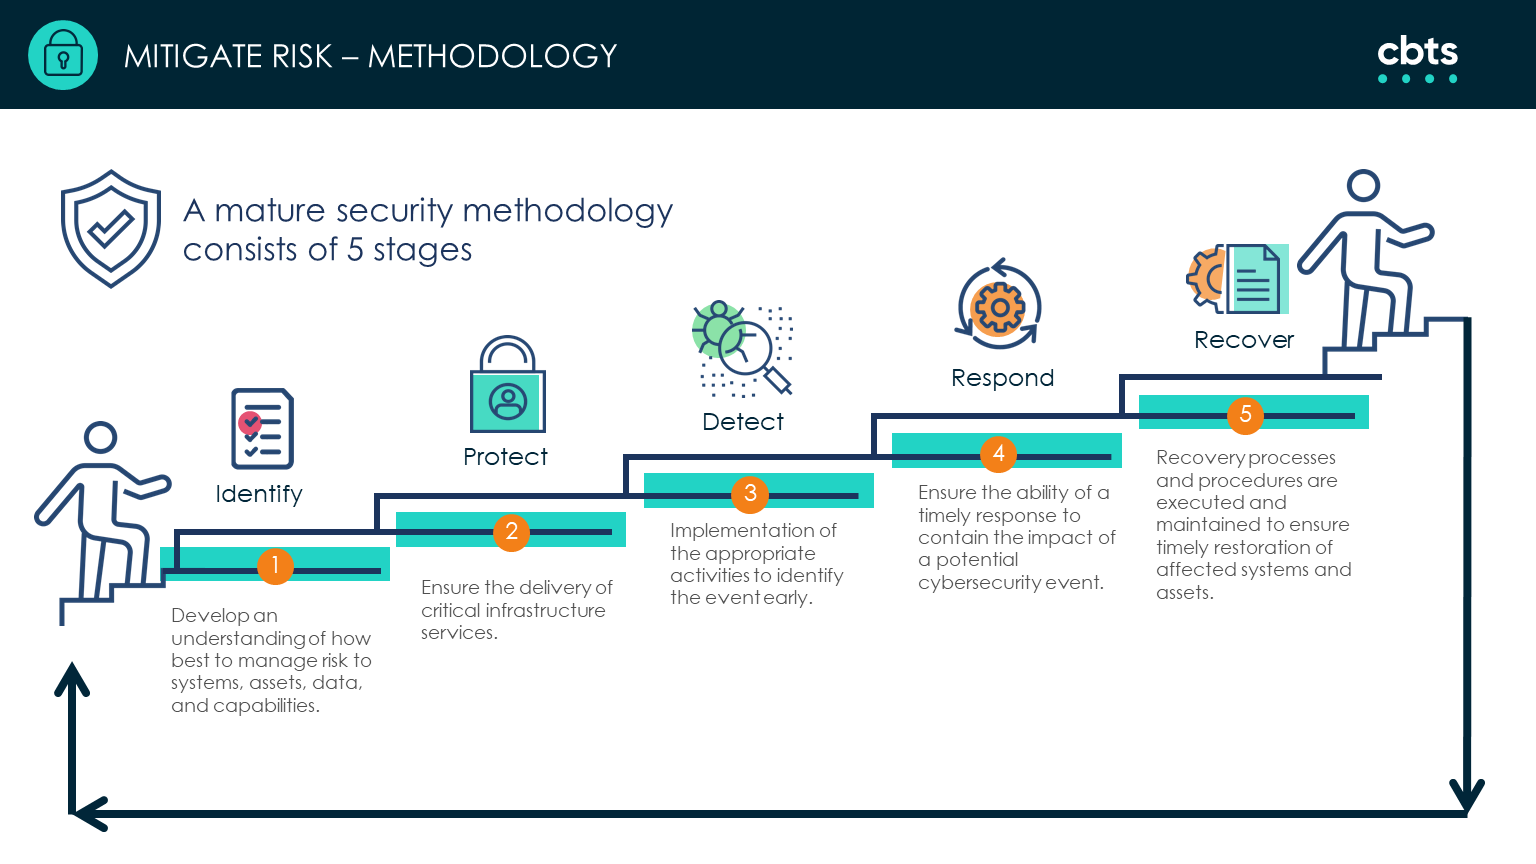 5 stages of mature security methodology to mitigate risk